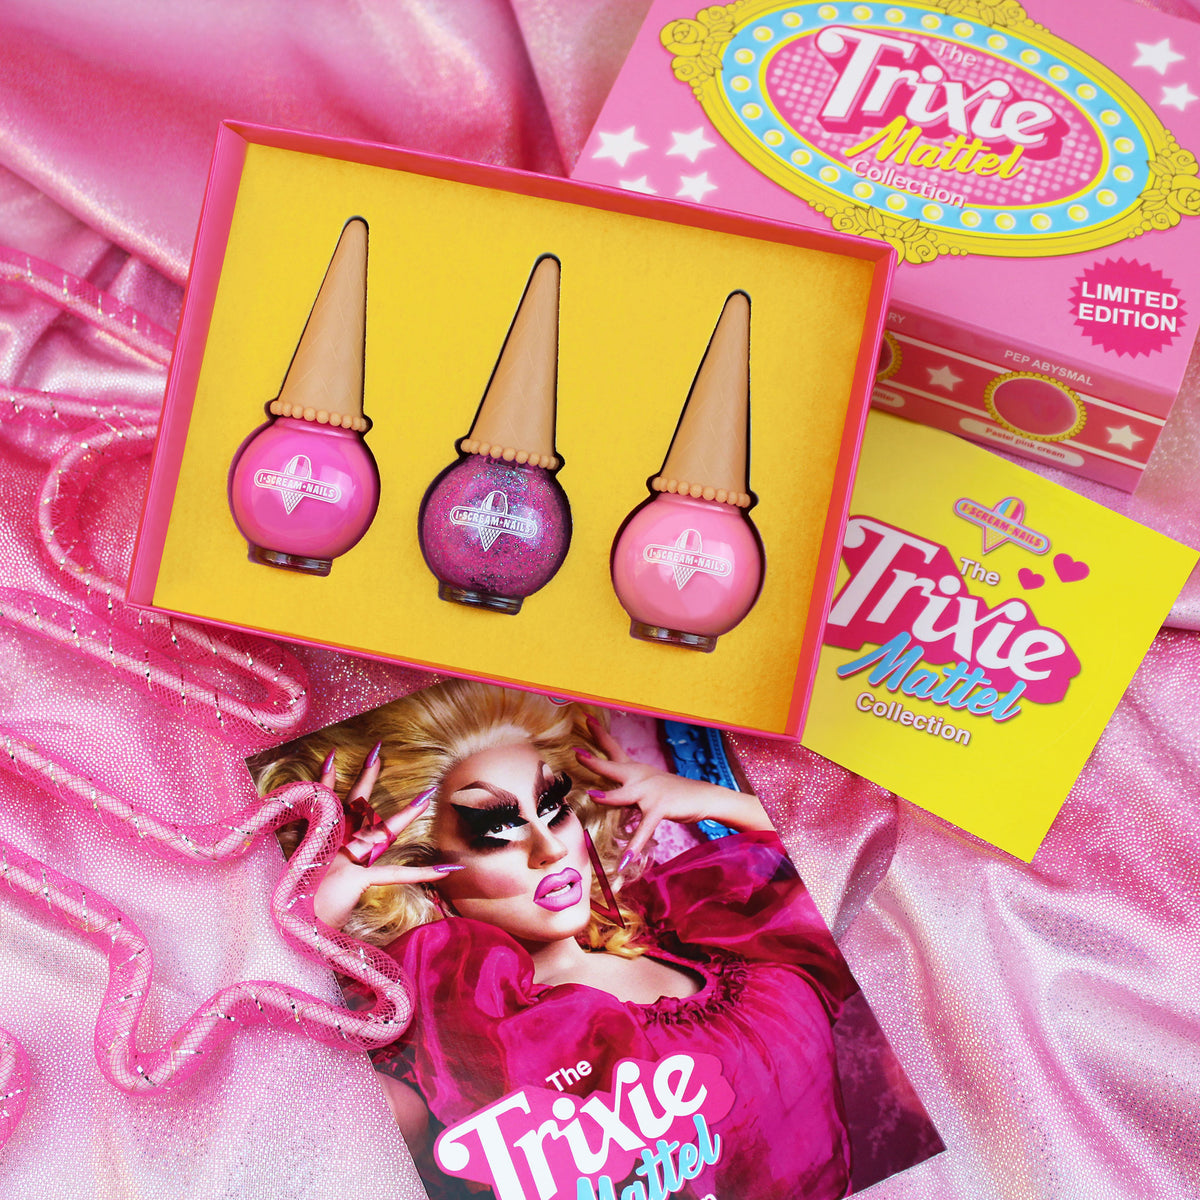 The Trixie Mattel Collection